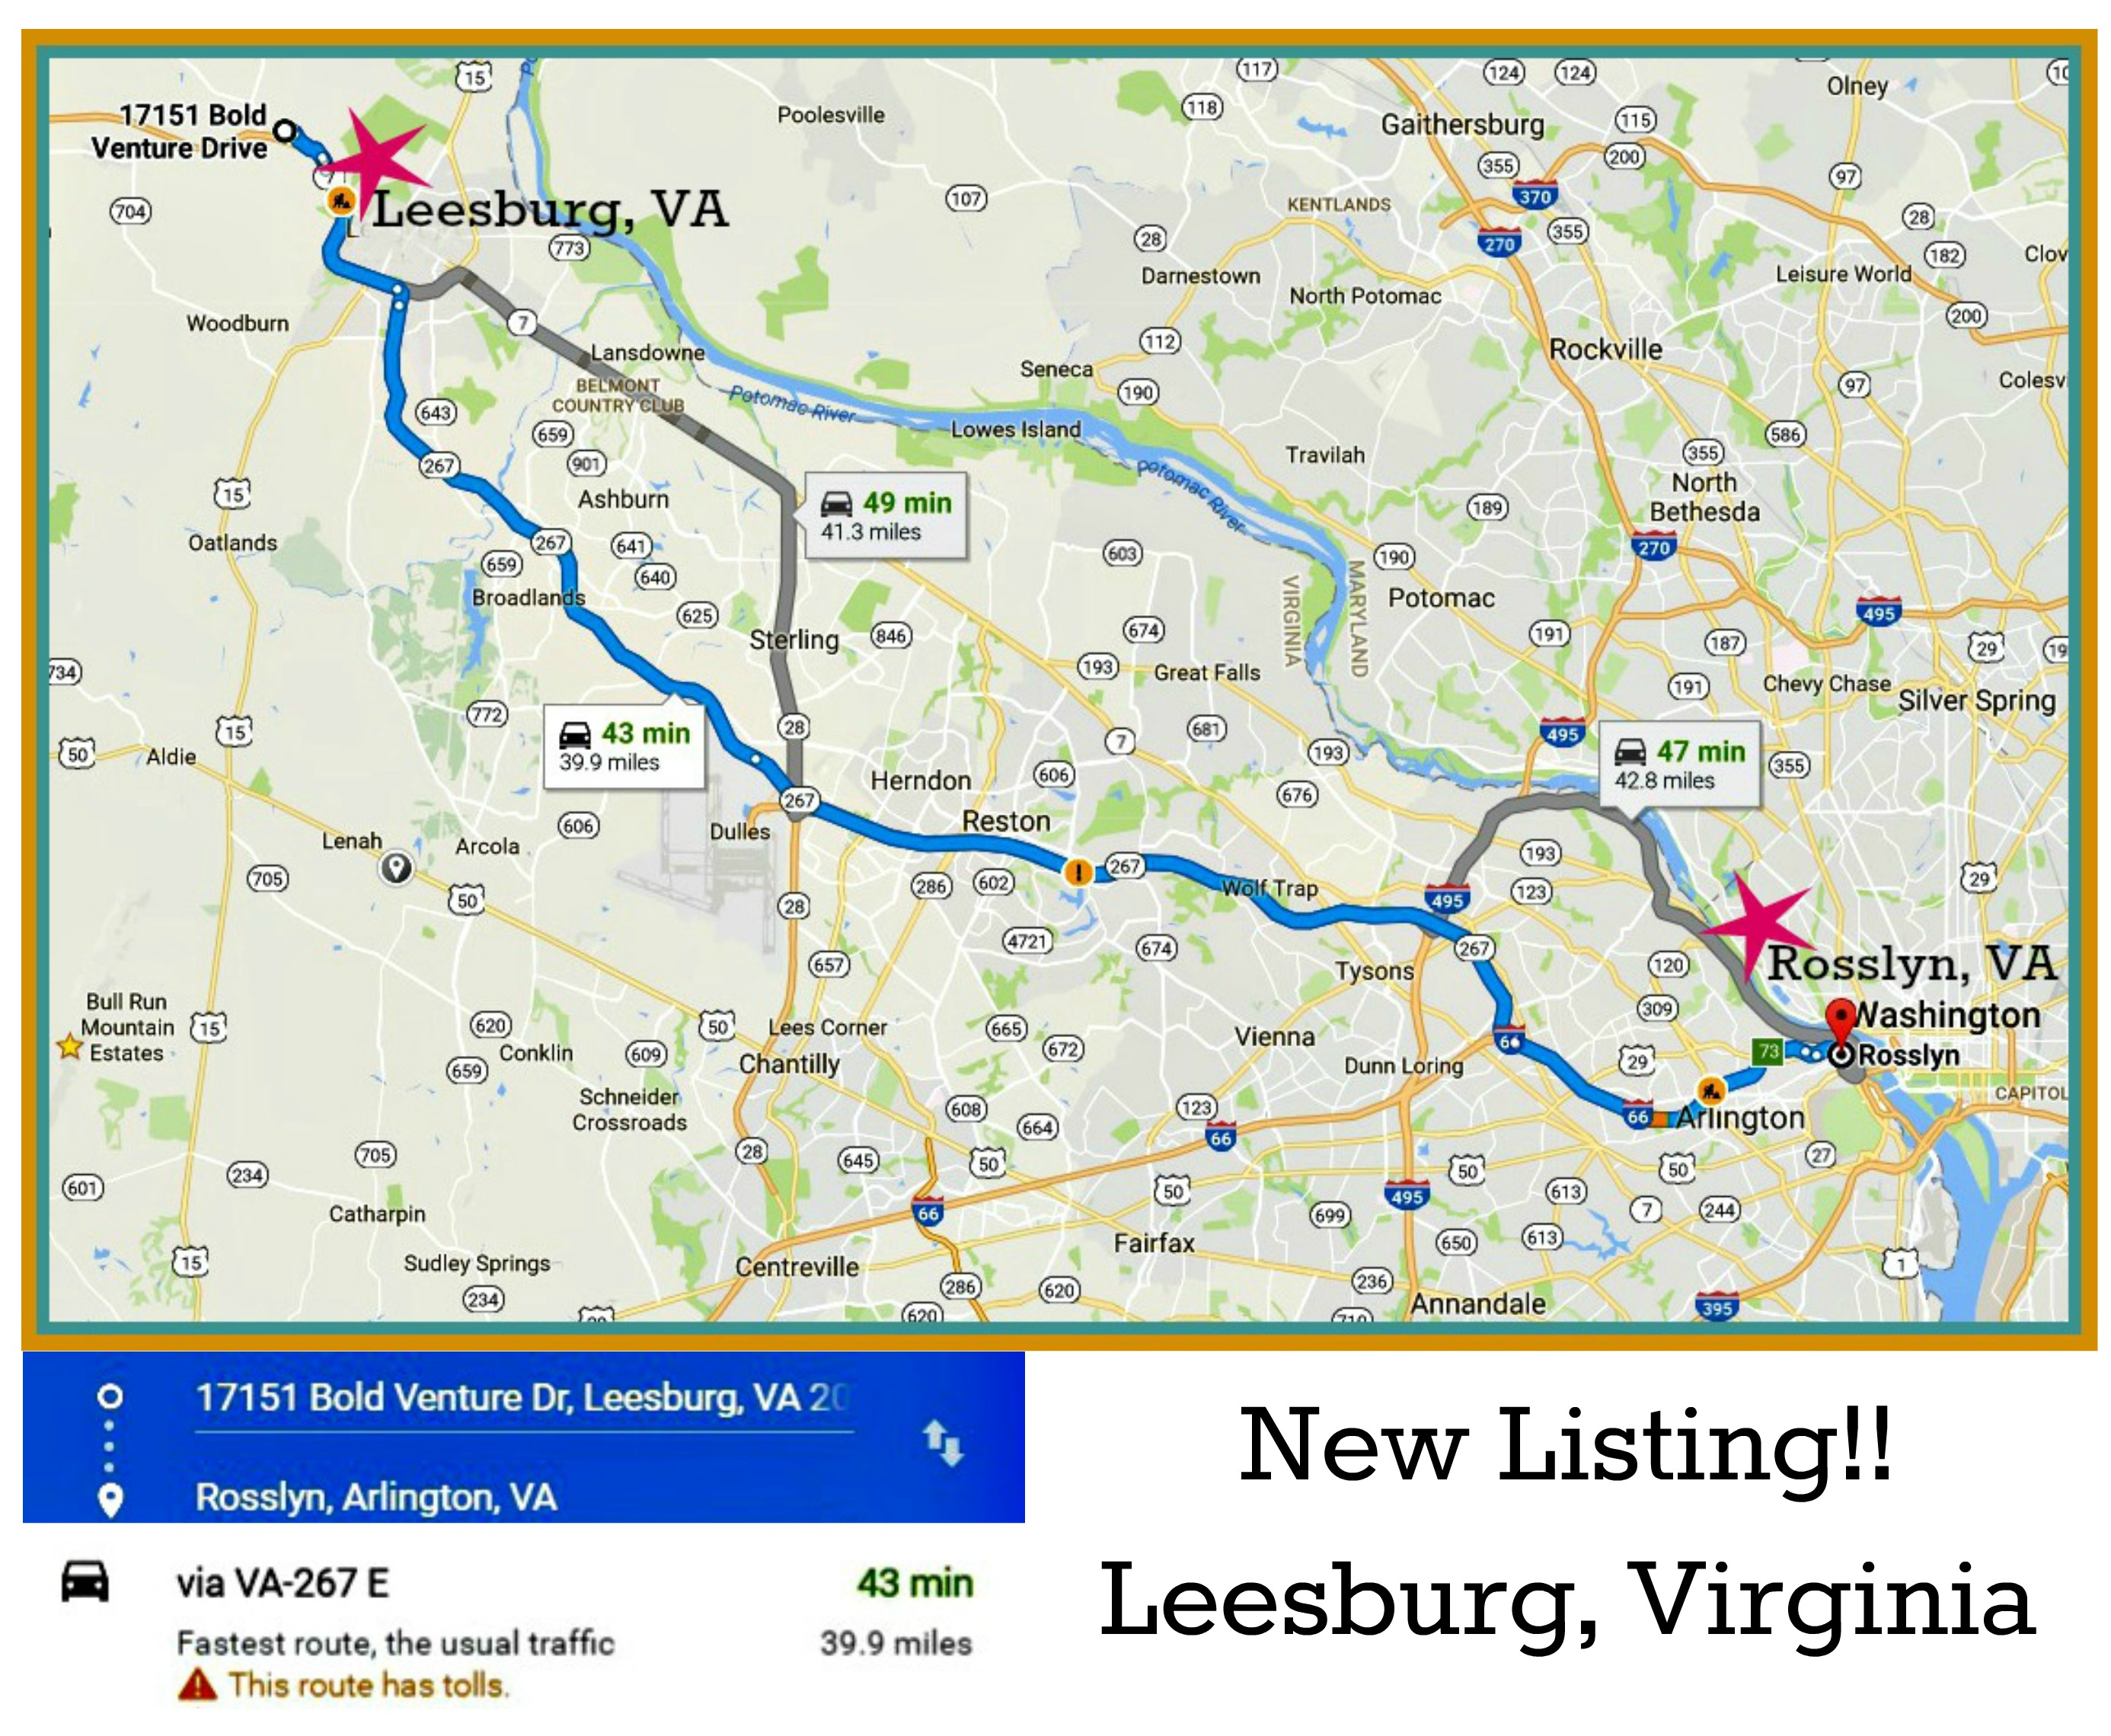 Driving Directions from Leesburg, Virginia to Washington, DC